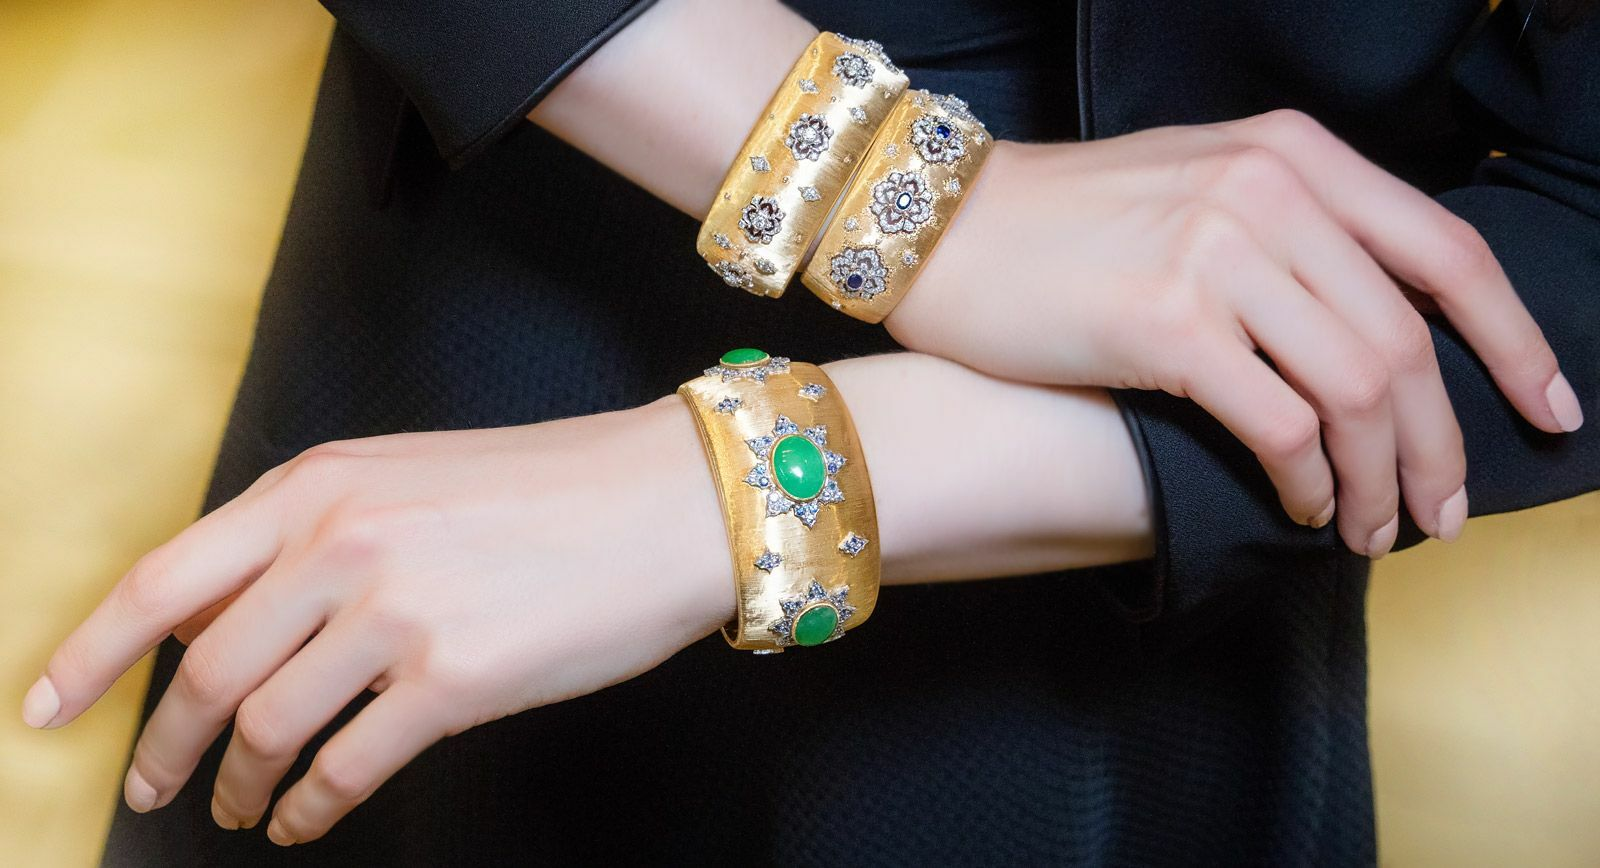 Buccellati cuff bracelets in white and yellow gold